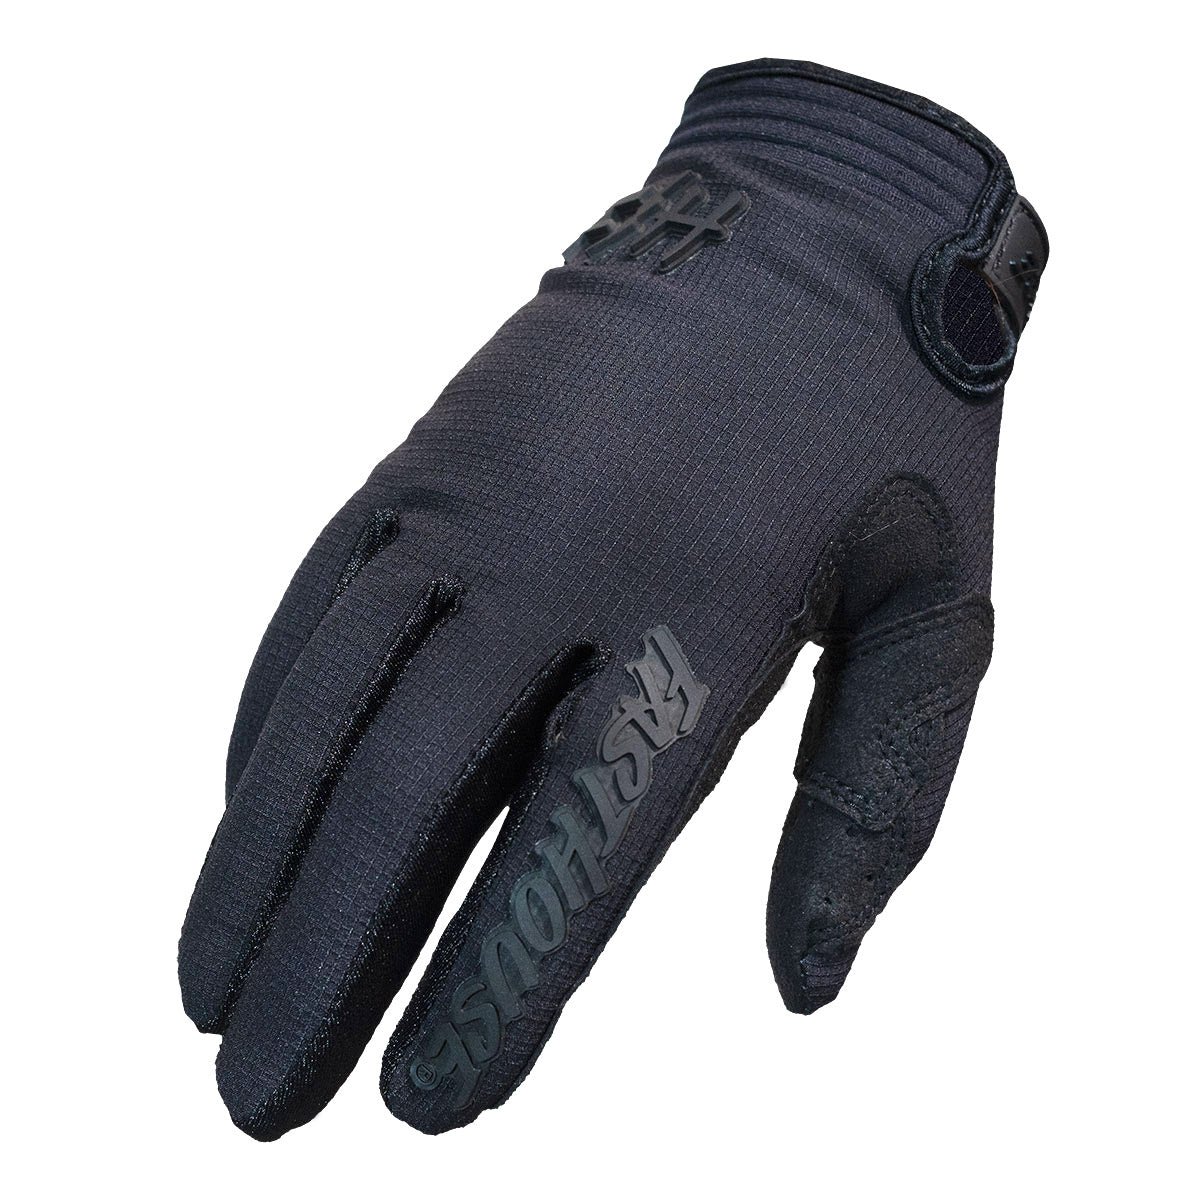 Speed Style Air Glove - Solid Black